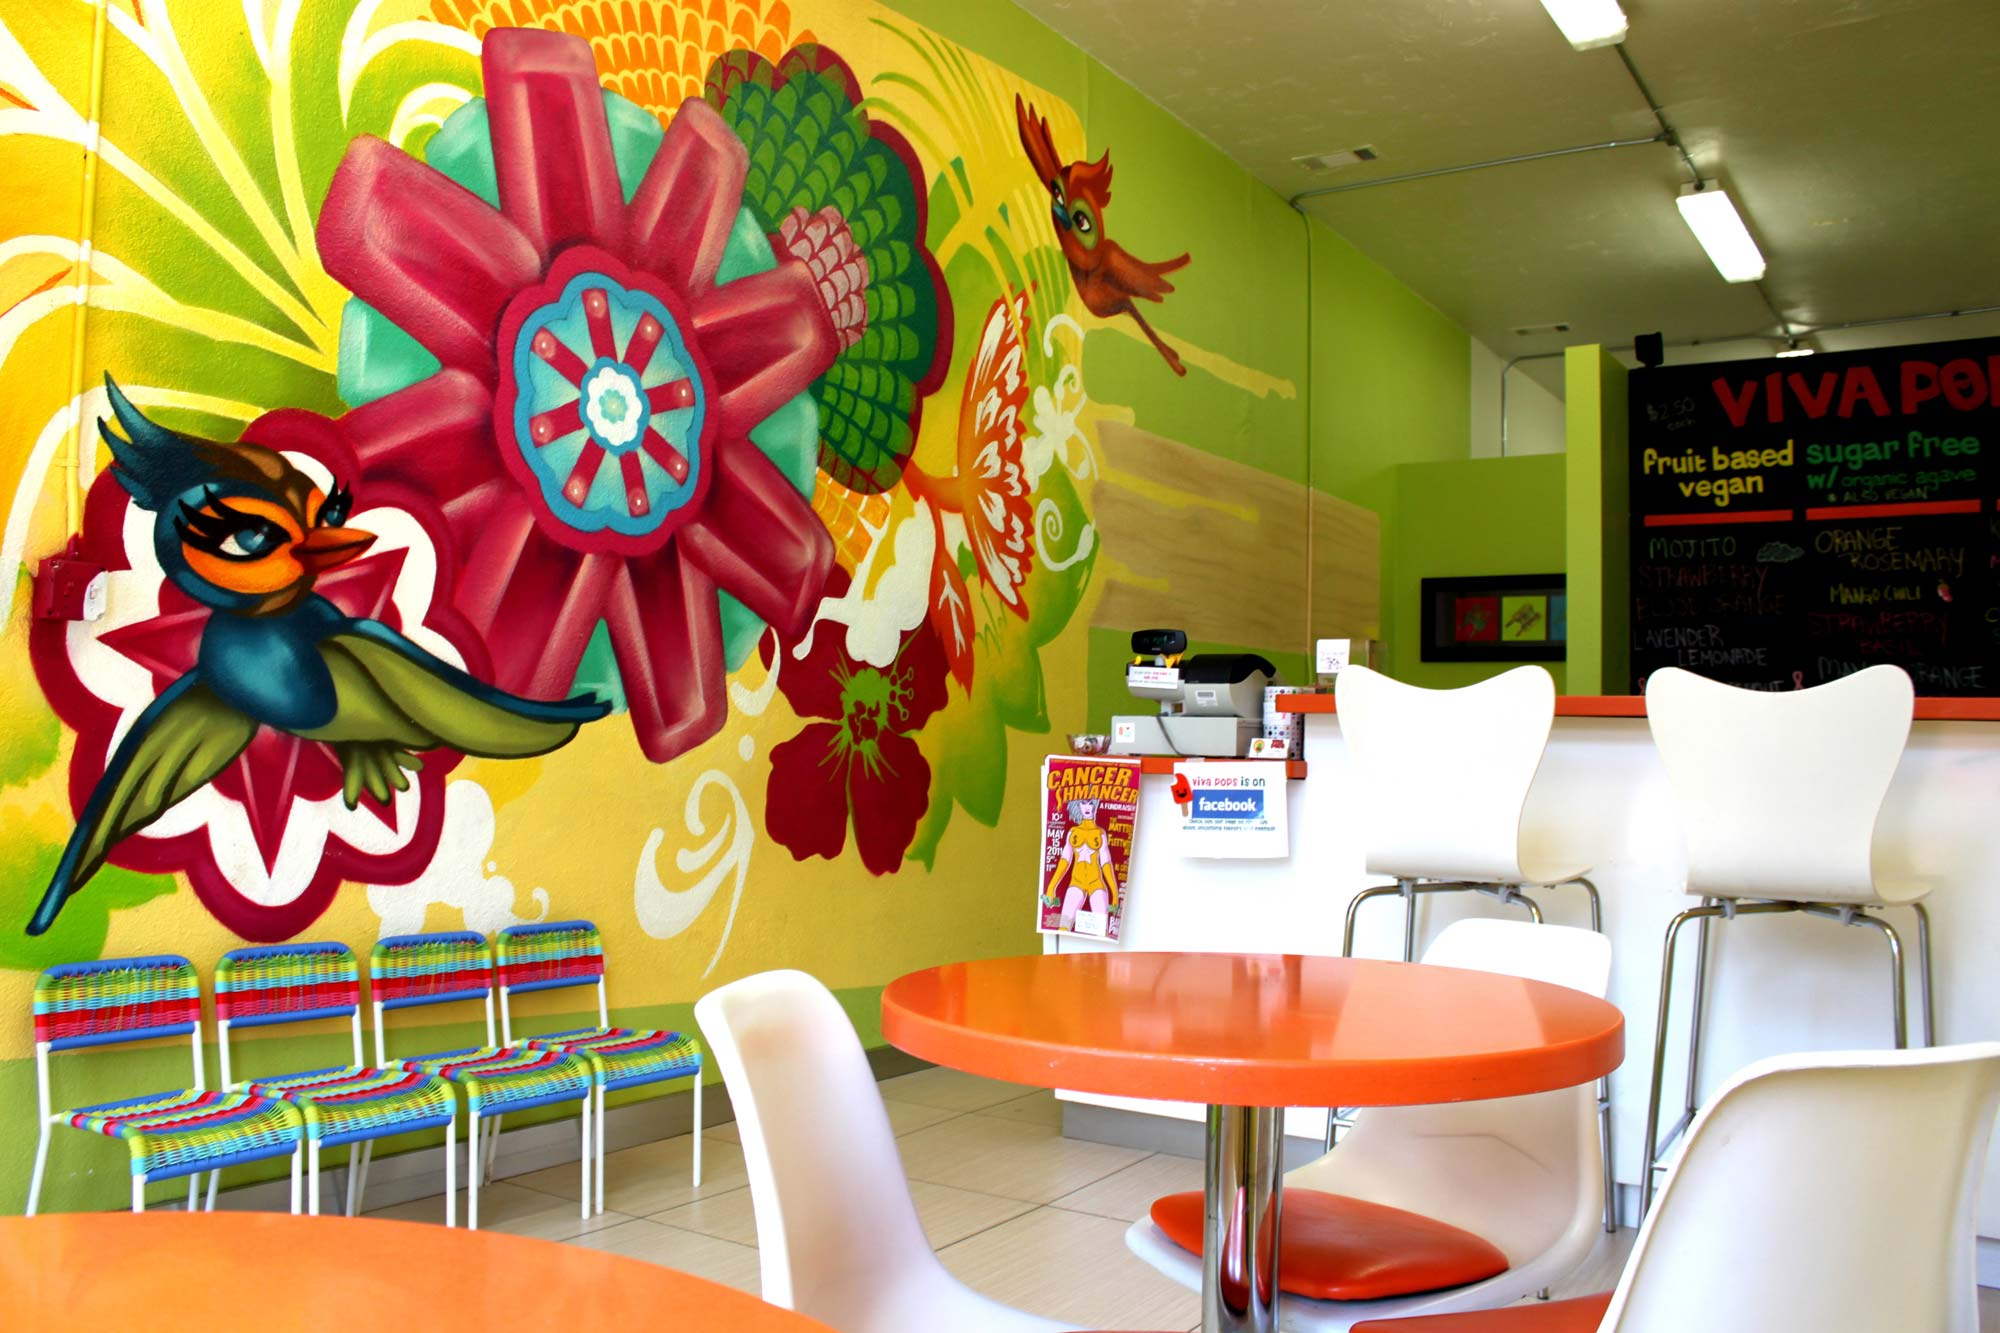 Viva Pops Shop Interior